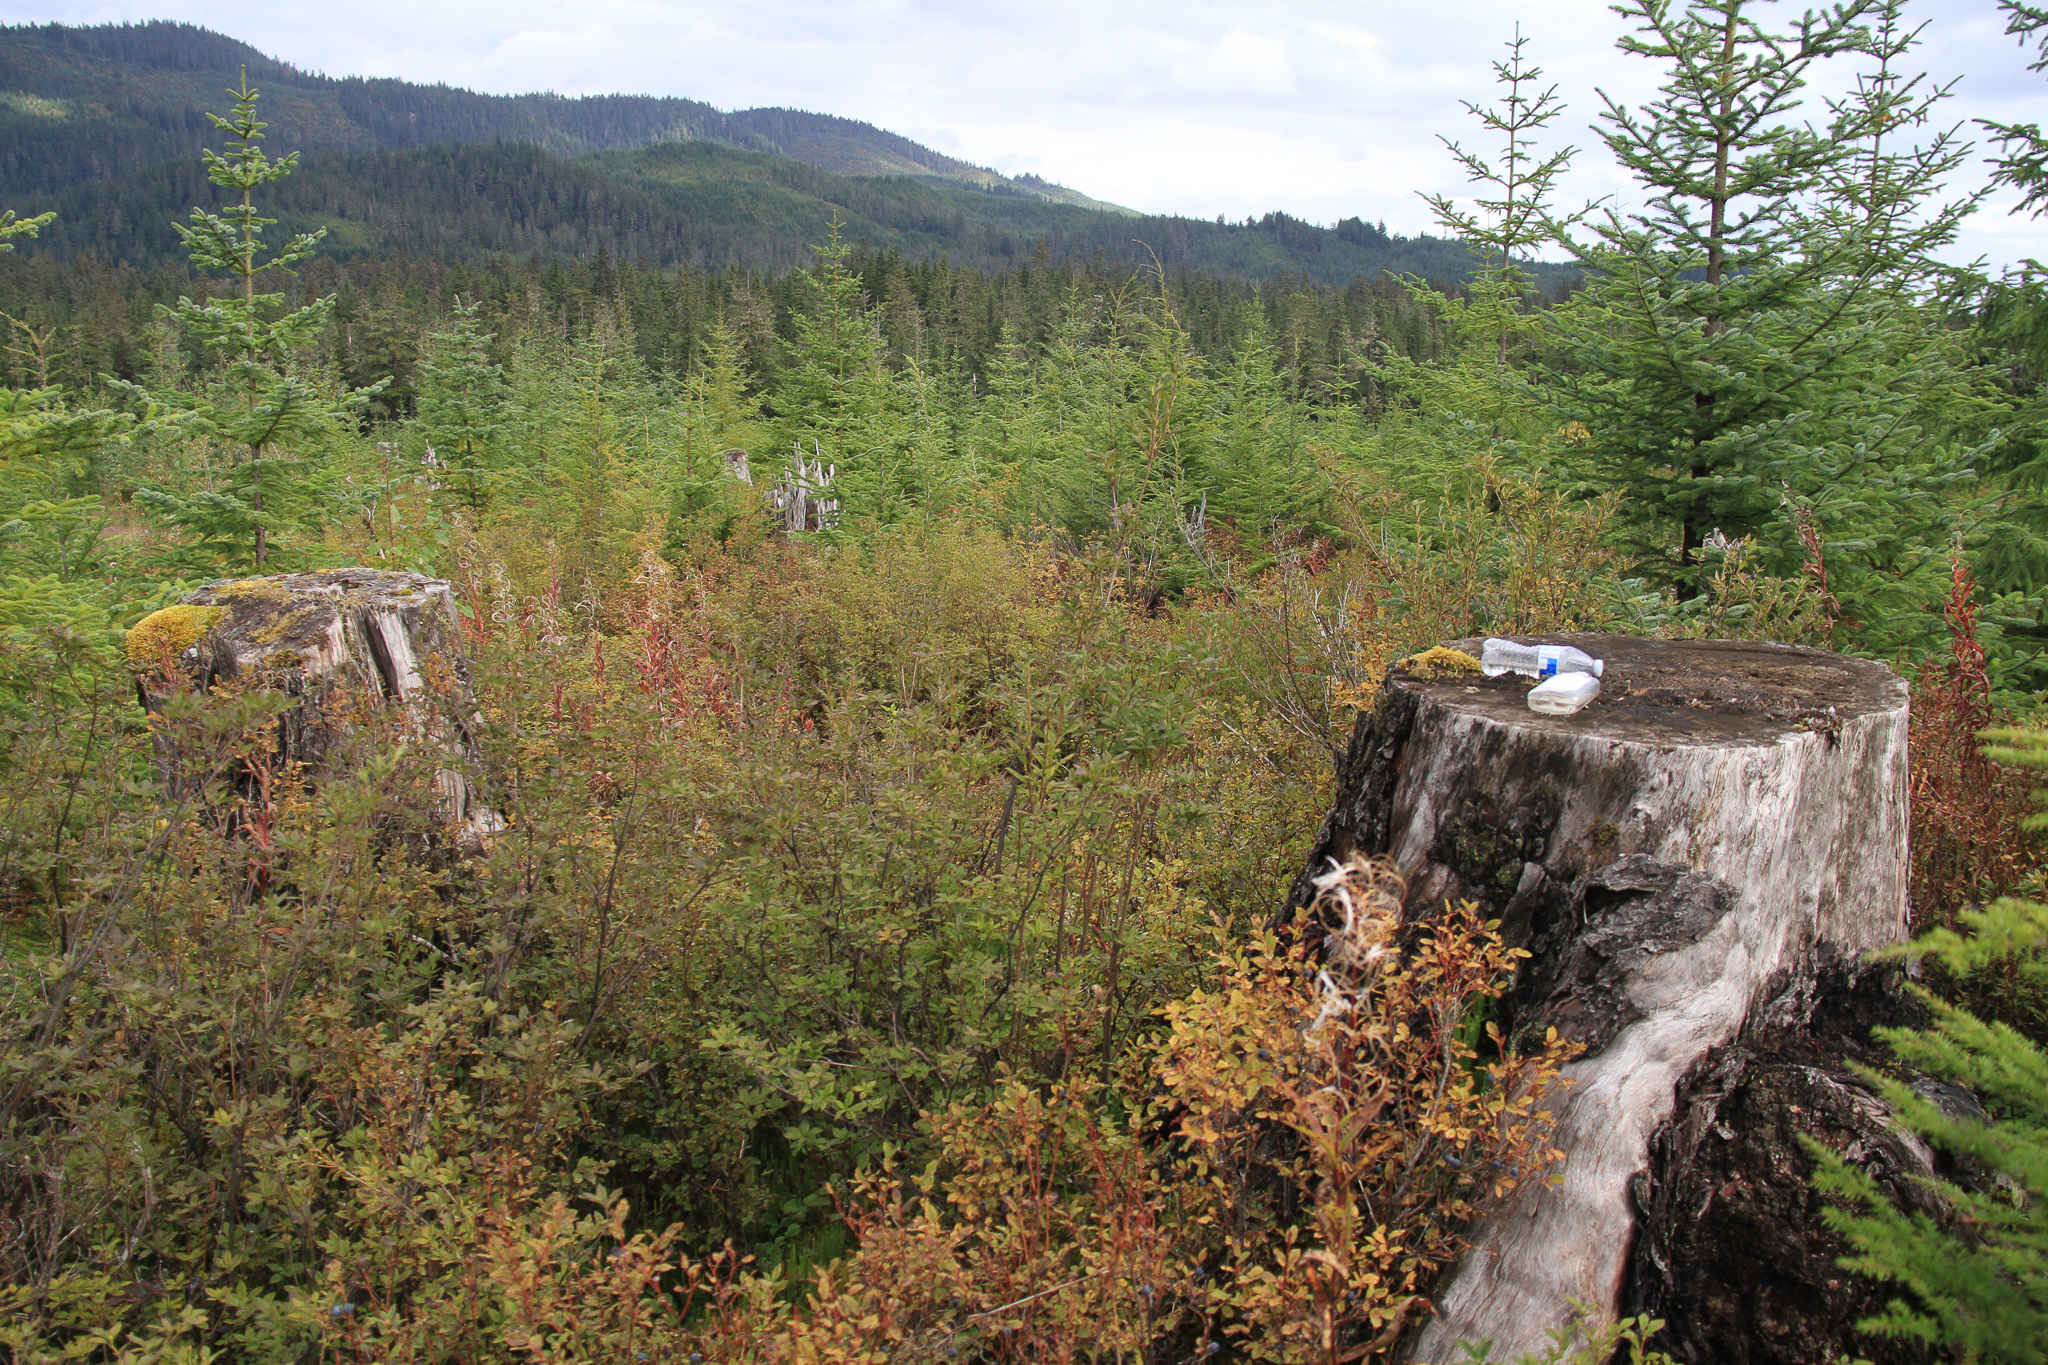 Old growth tree stumps on a recovering clearcut outside of Hoonah, Alaska, on Chichagof Island.